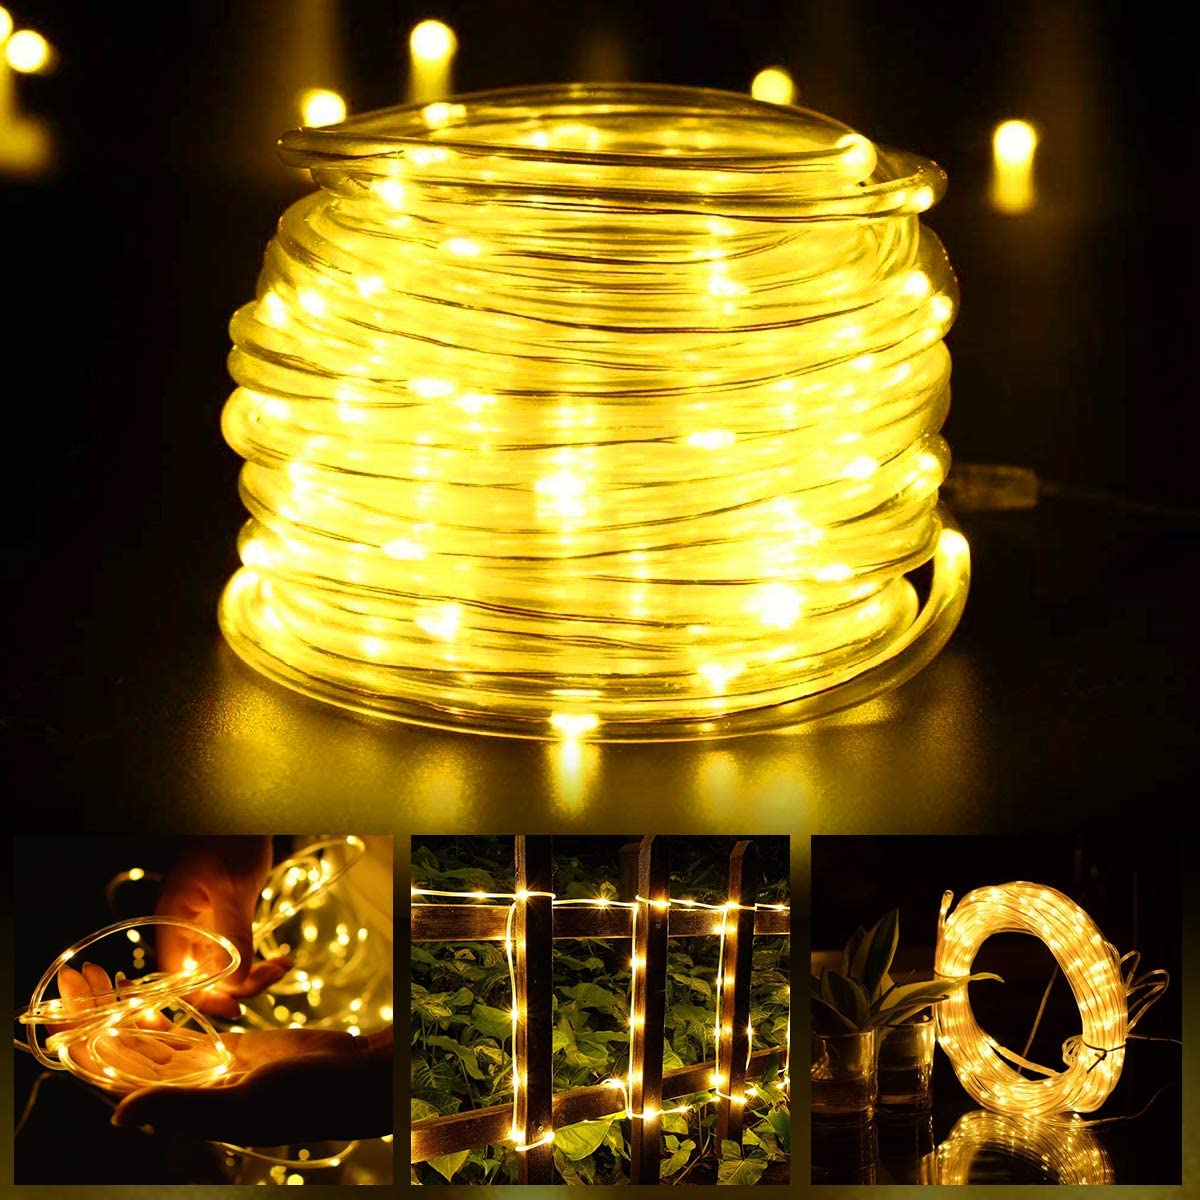 Solar String Rope Lights, 40 FT 100 LED((Upgraded Solar Panel and Battery) Super Bright Outdoor 8 Modes Waterproof Fairy Lights for Garden Patio Yard Party(Warm White): Home Improvement